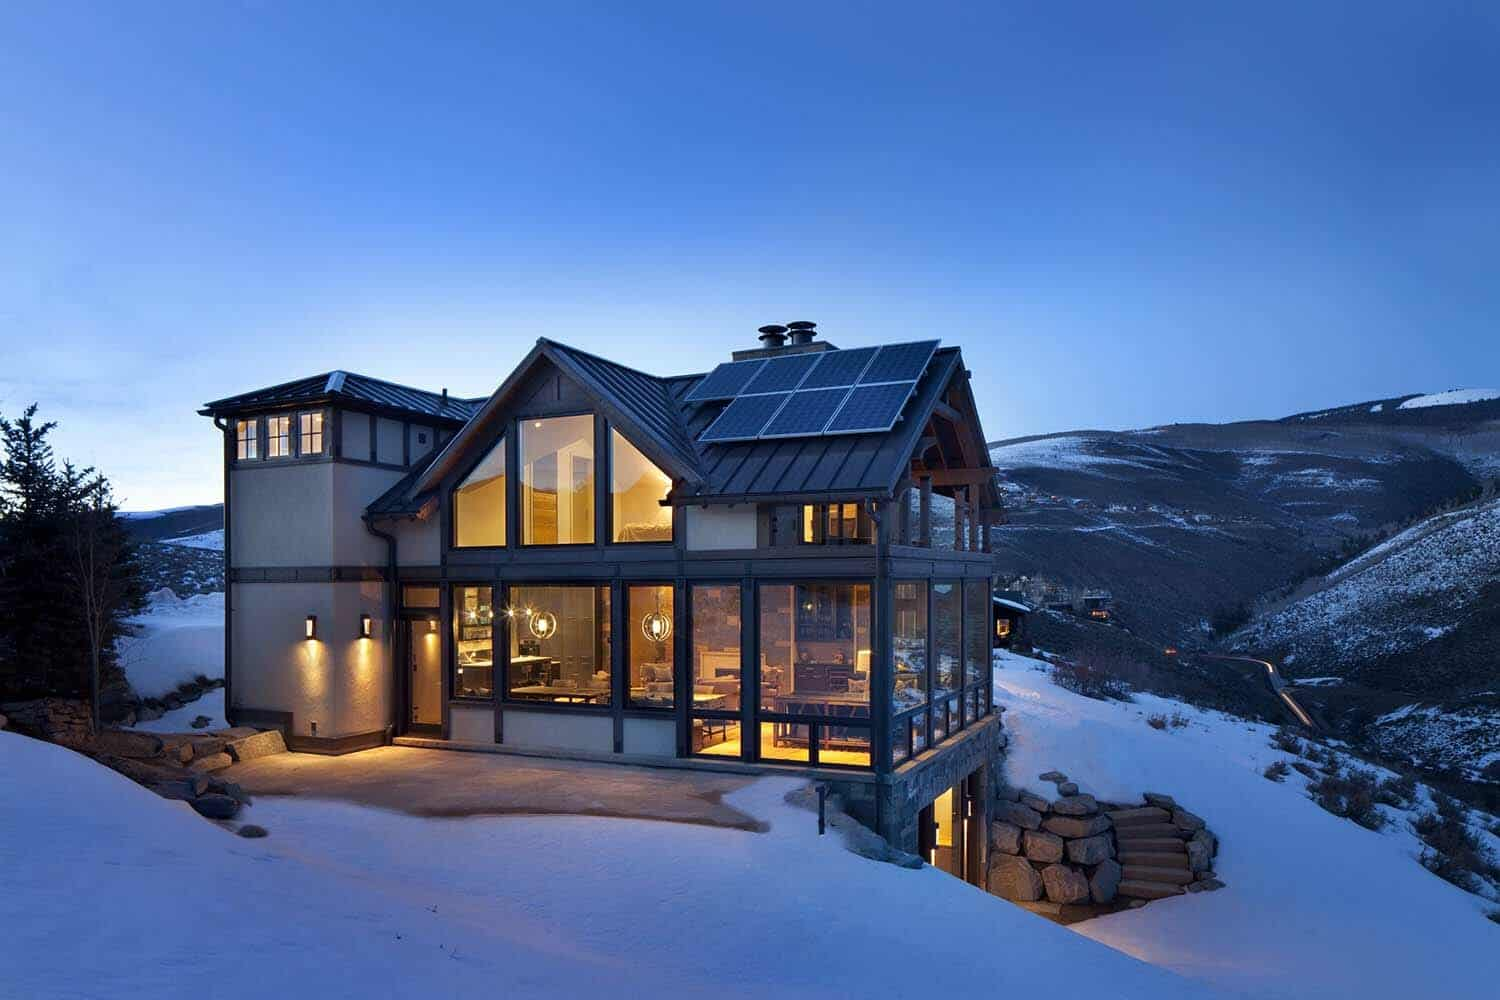 Colorado dream home showcases mountain contemporary living for Colorado dream home